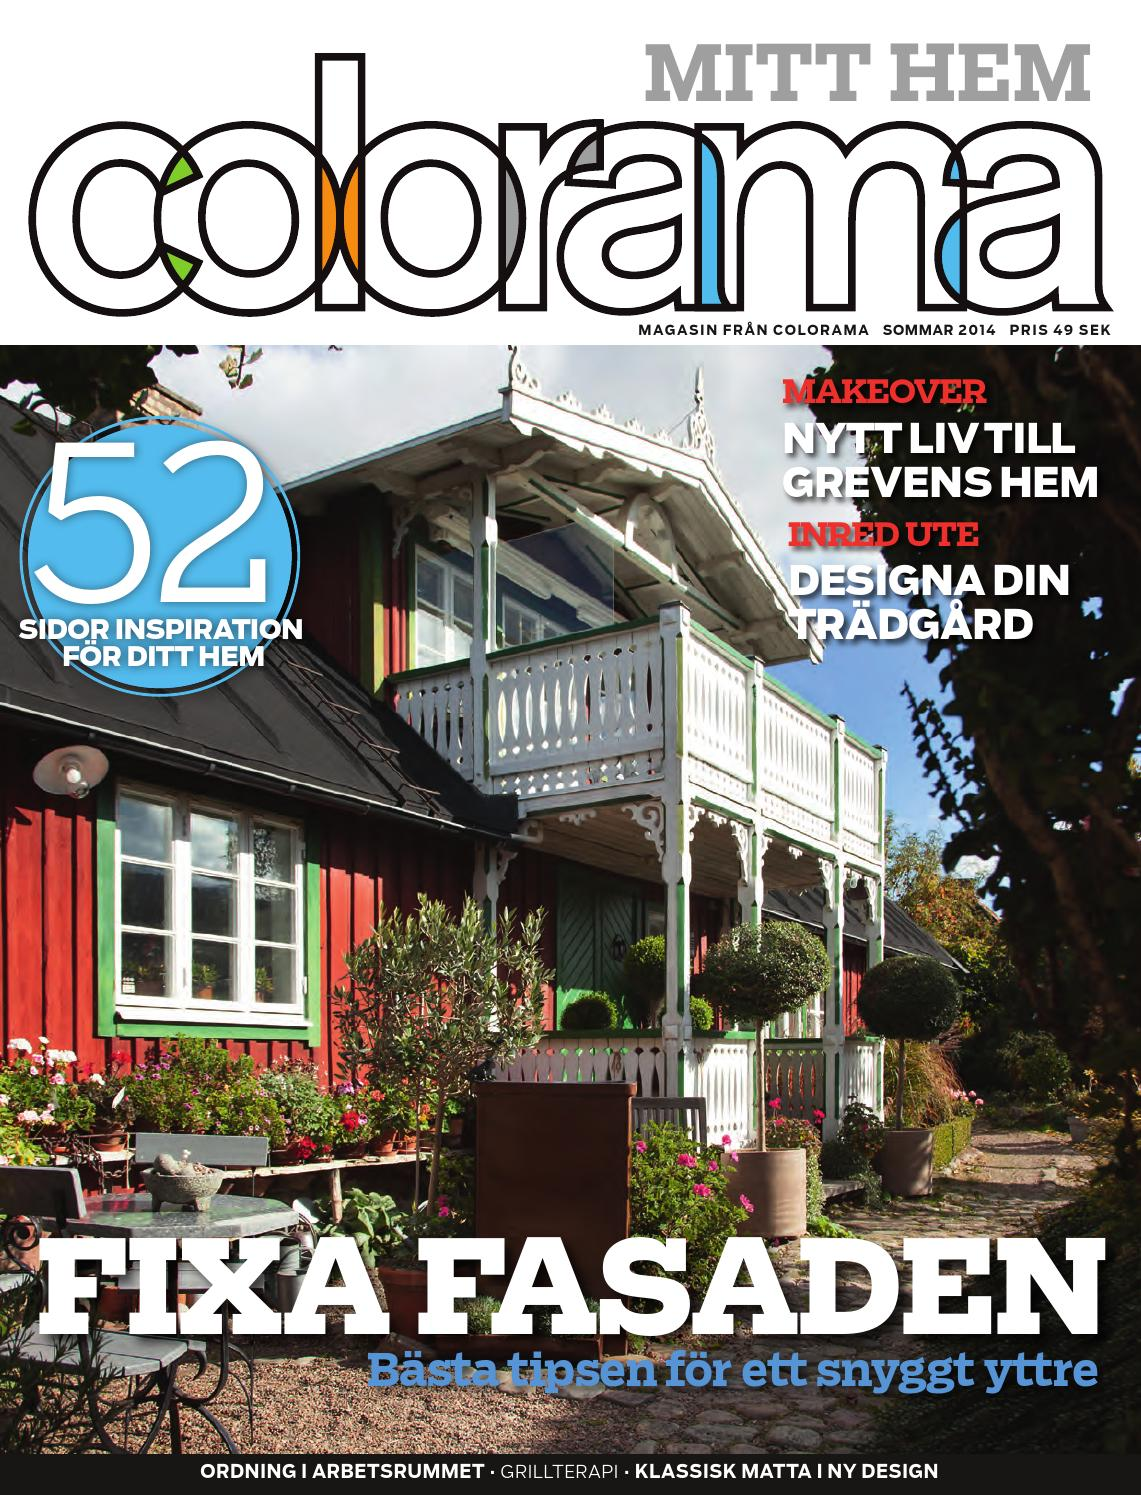 Colorama mitt hem, 2013 4 vinter by colorama   issuu